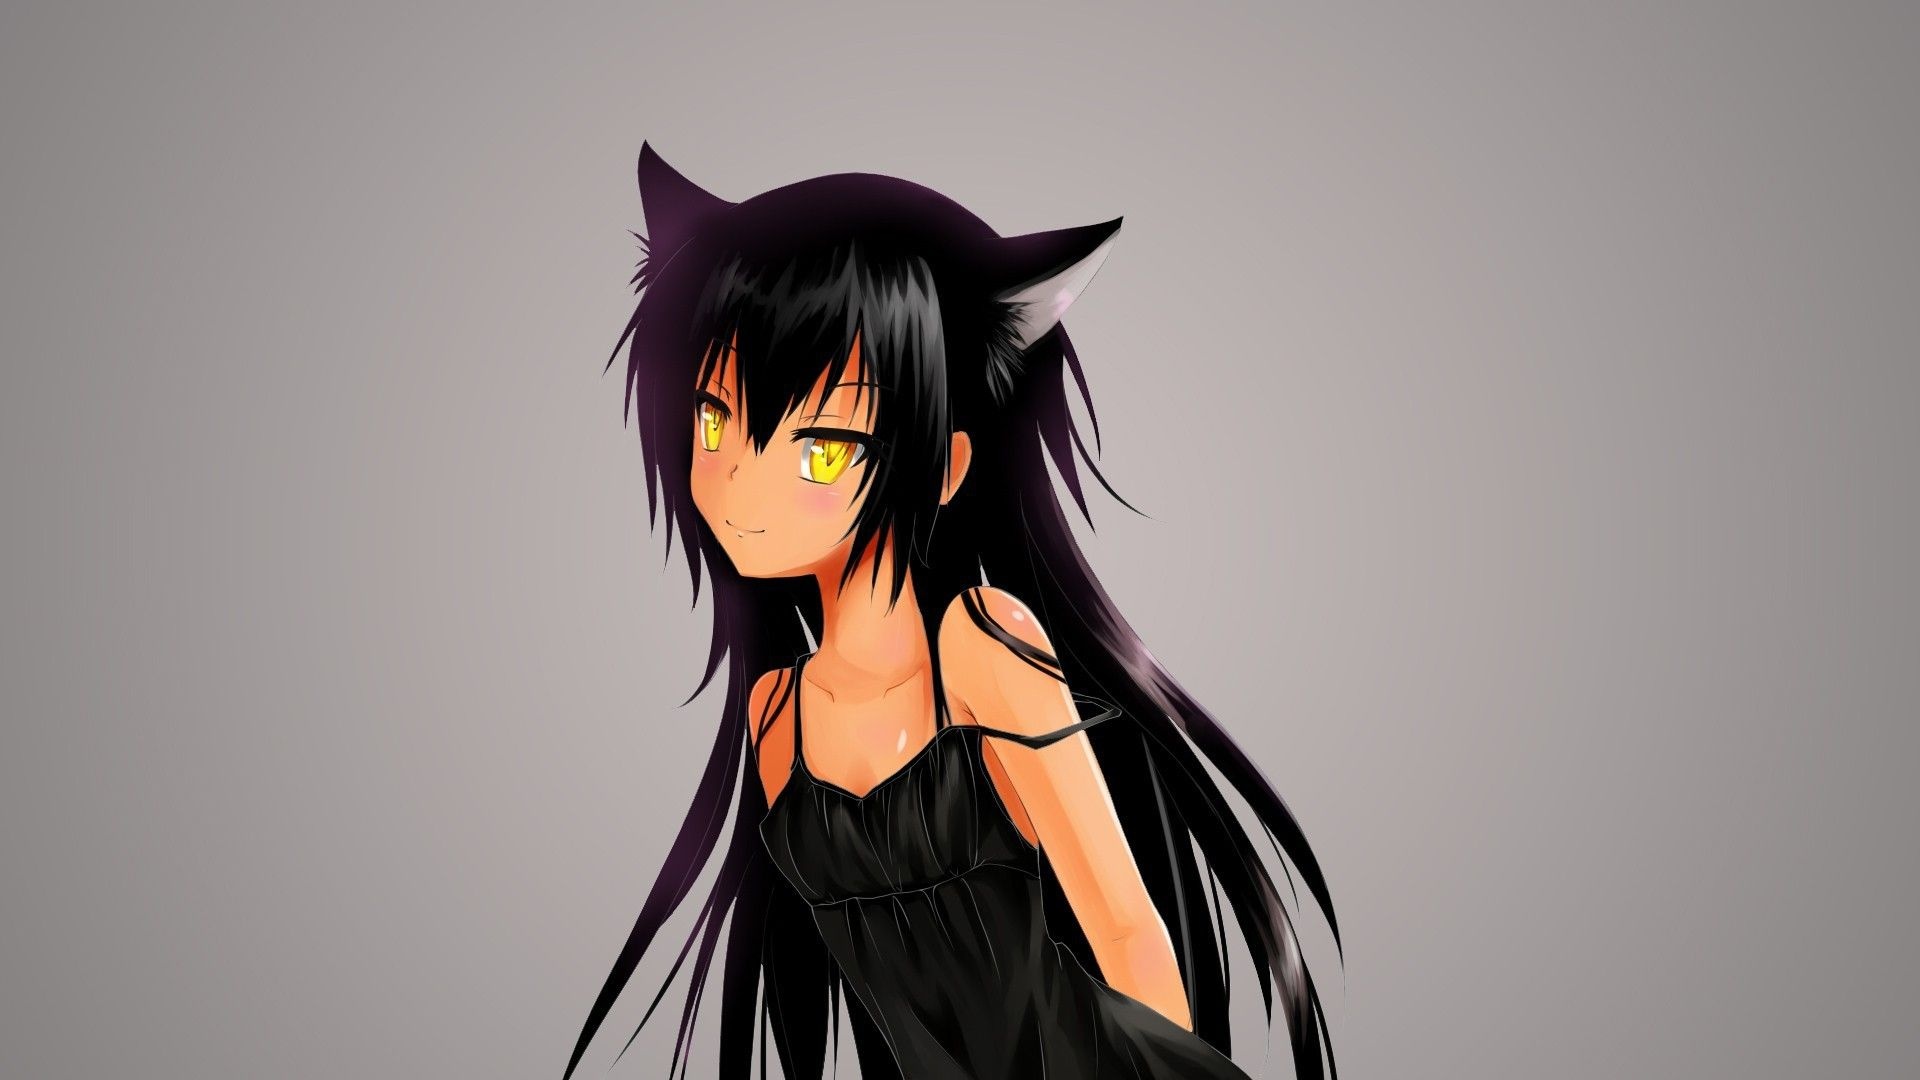 Anime Brunette Anime Cat Love And Other Troubles Wallpapers Working